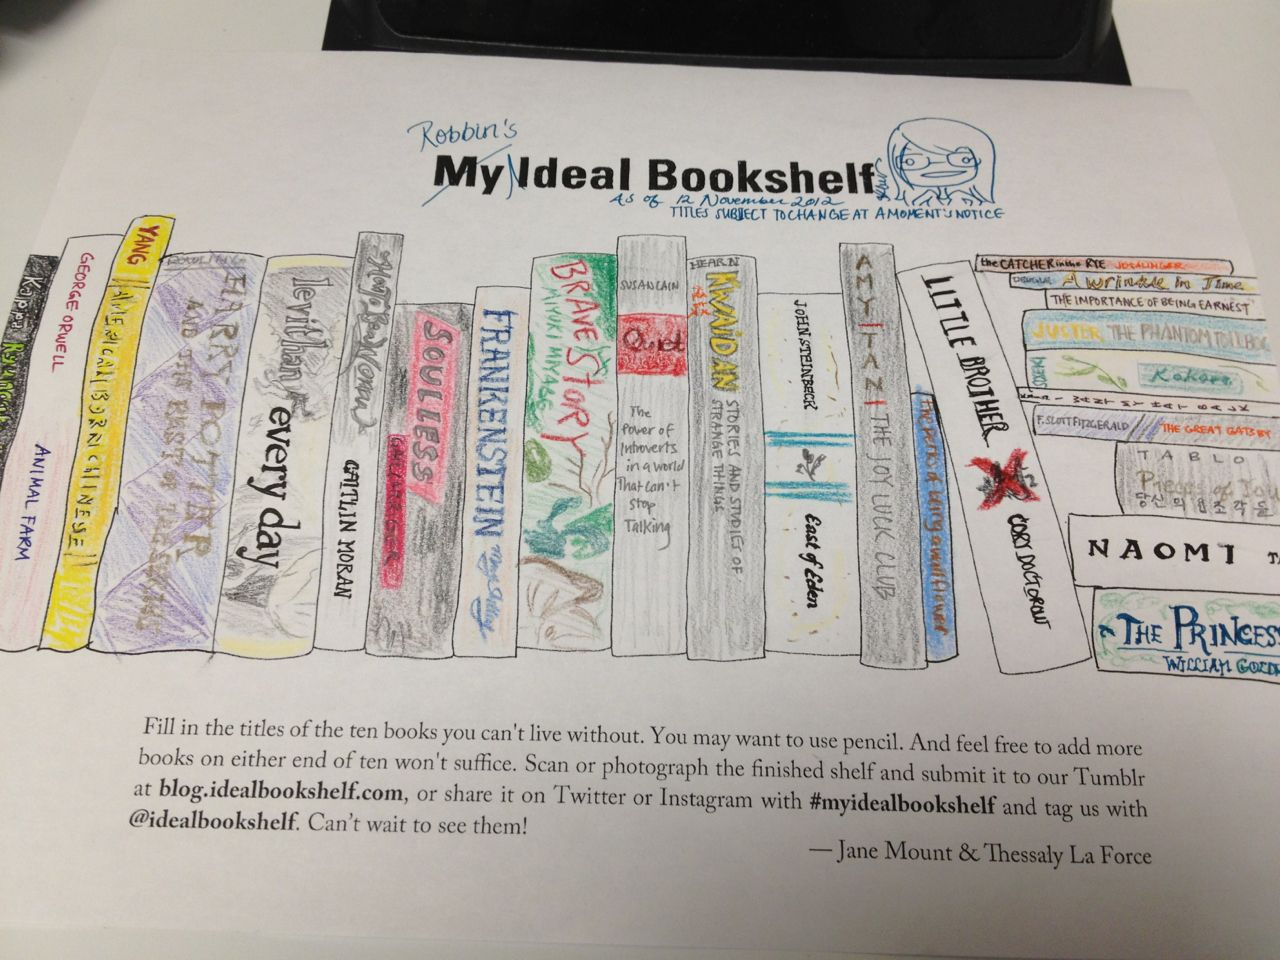 Ideal Bookshelf Is A Blog Where People Choose Their Top 10